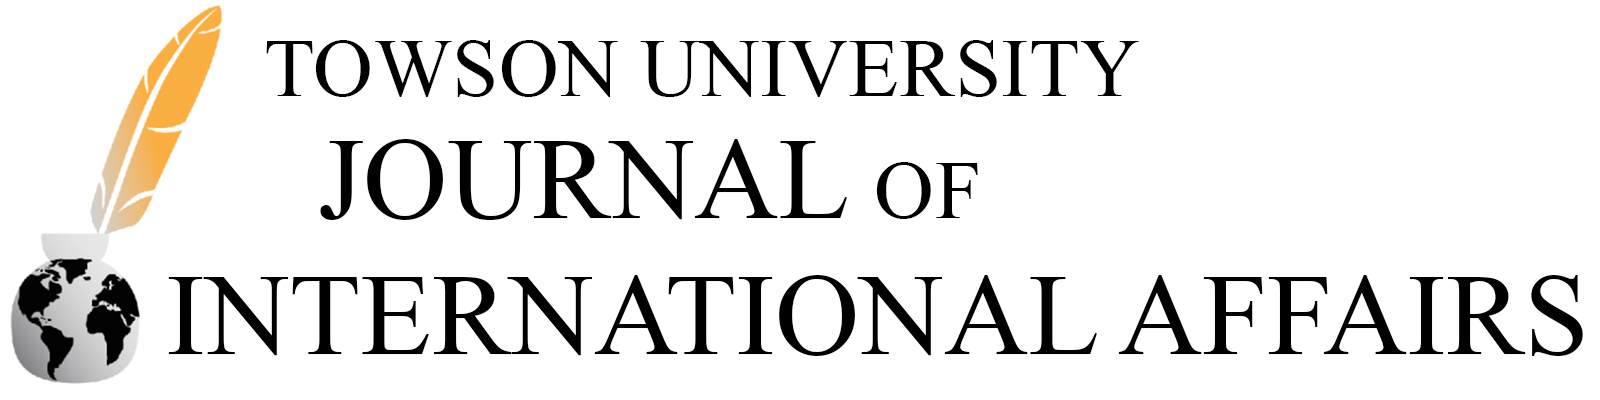 Towson University Journal of International Affairs